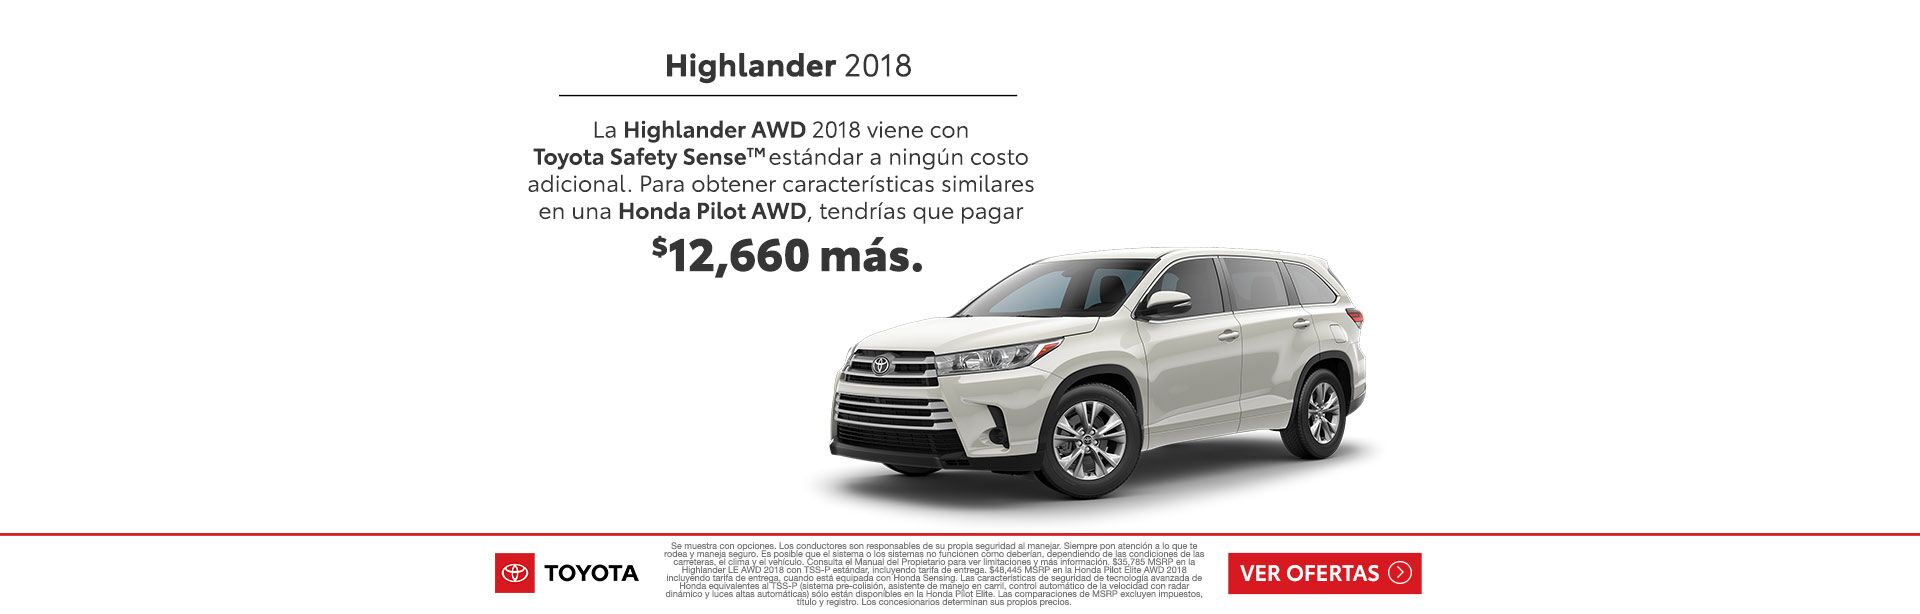 Highlander Oct 2018 ESP